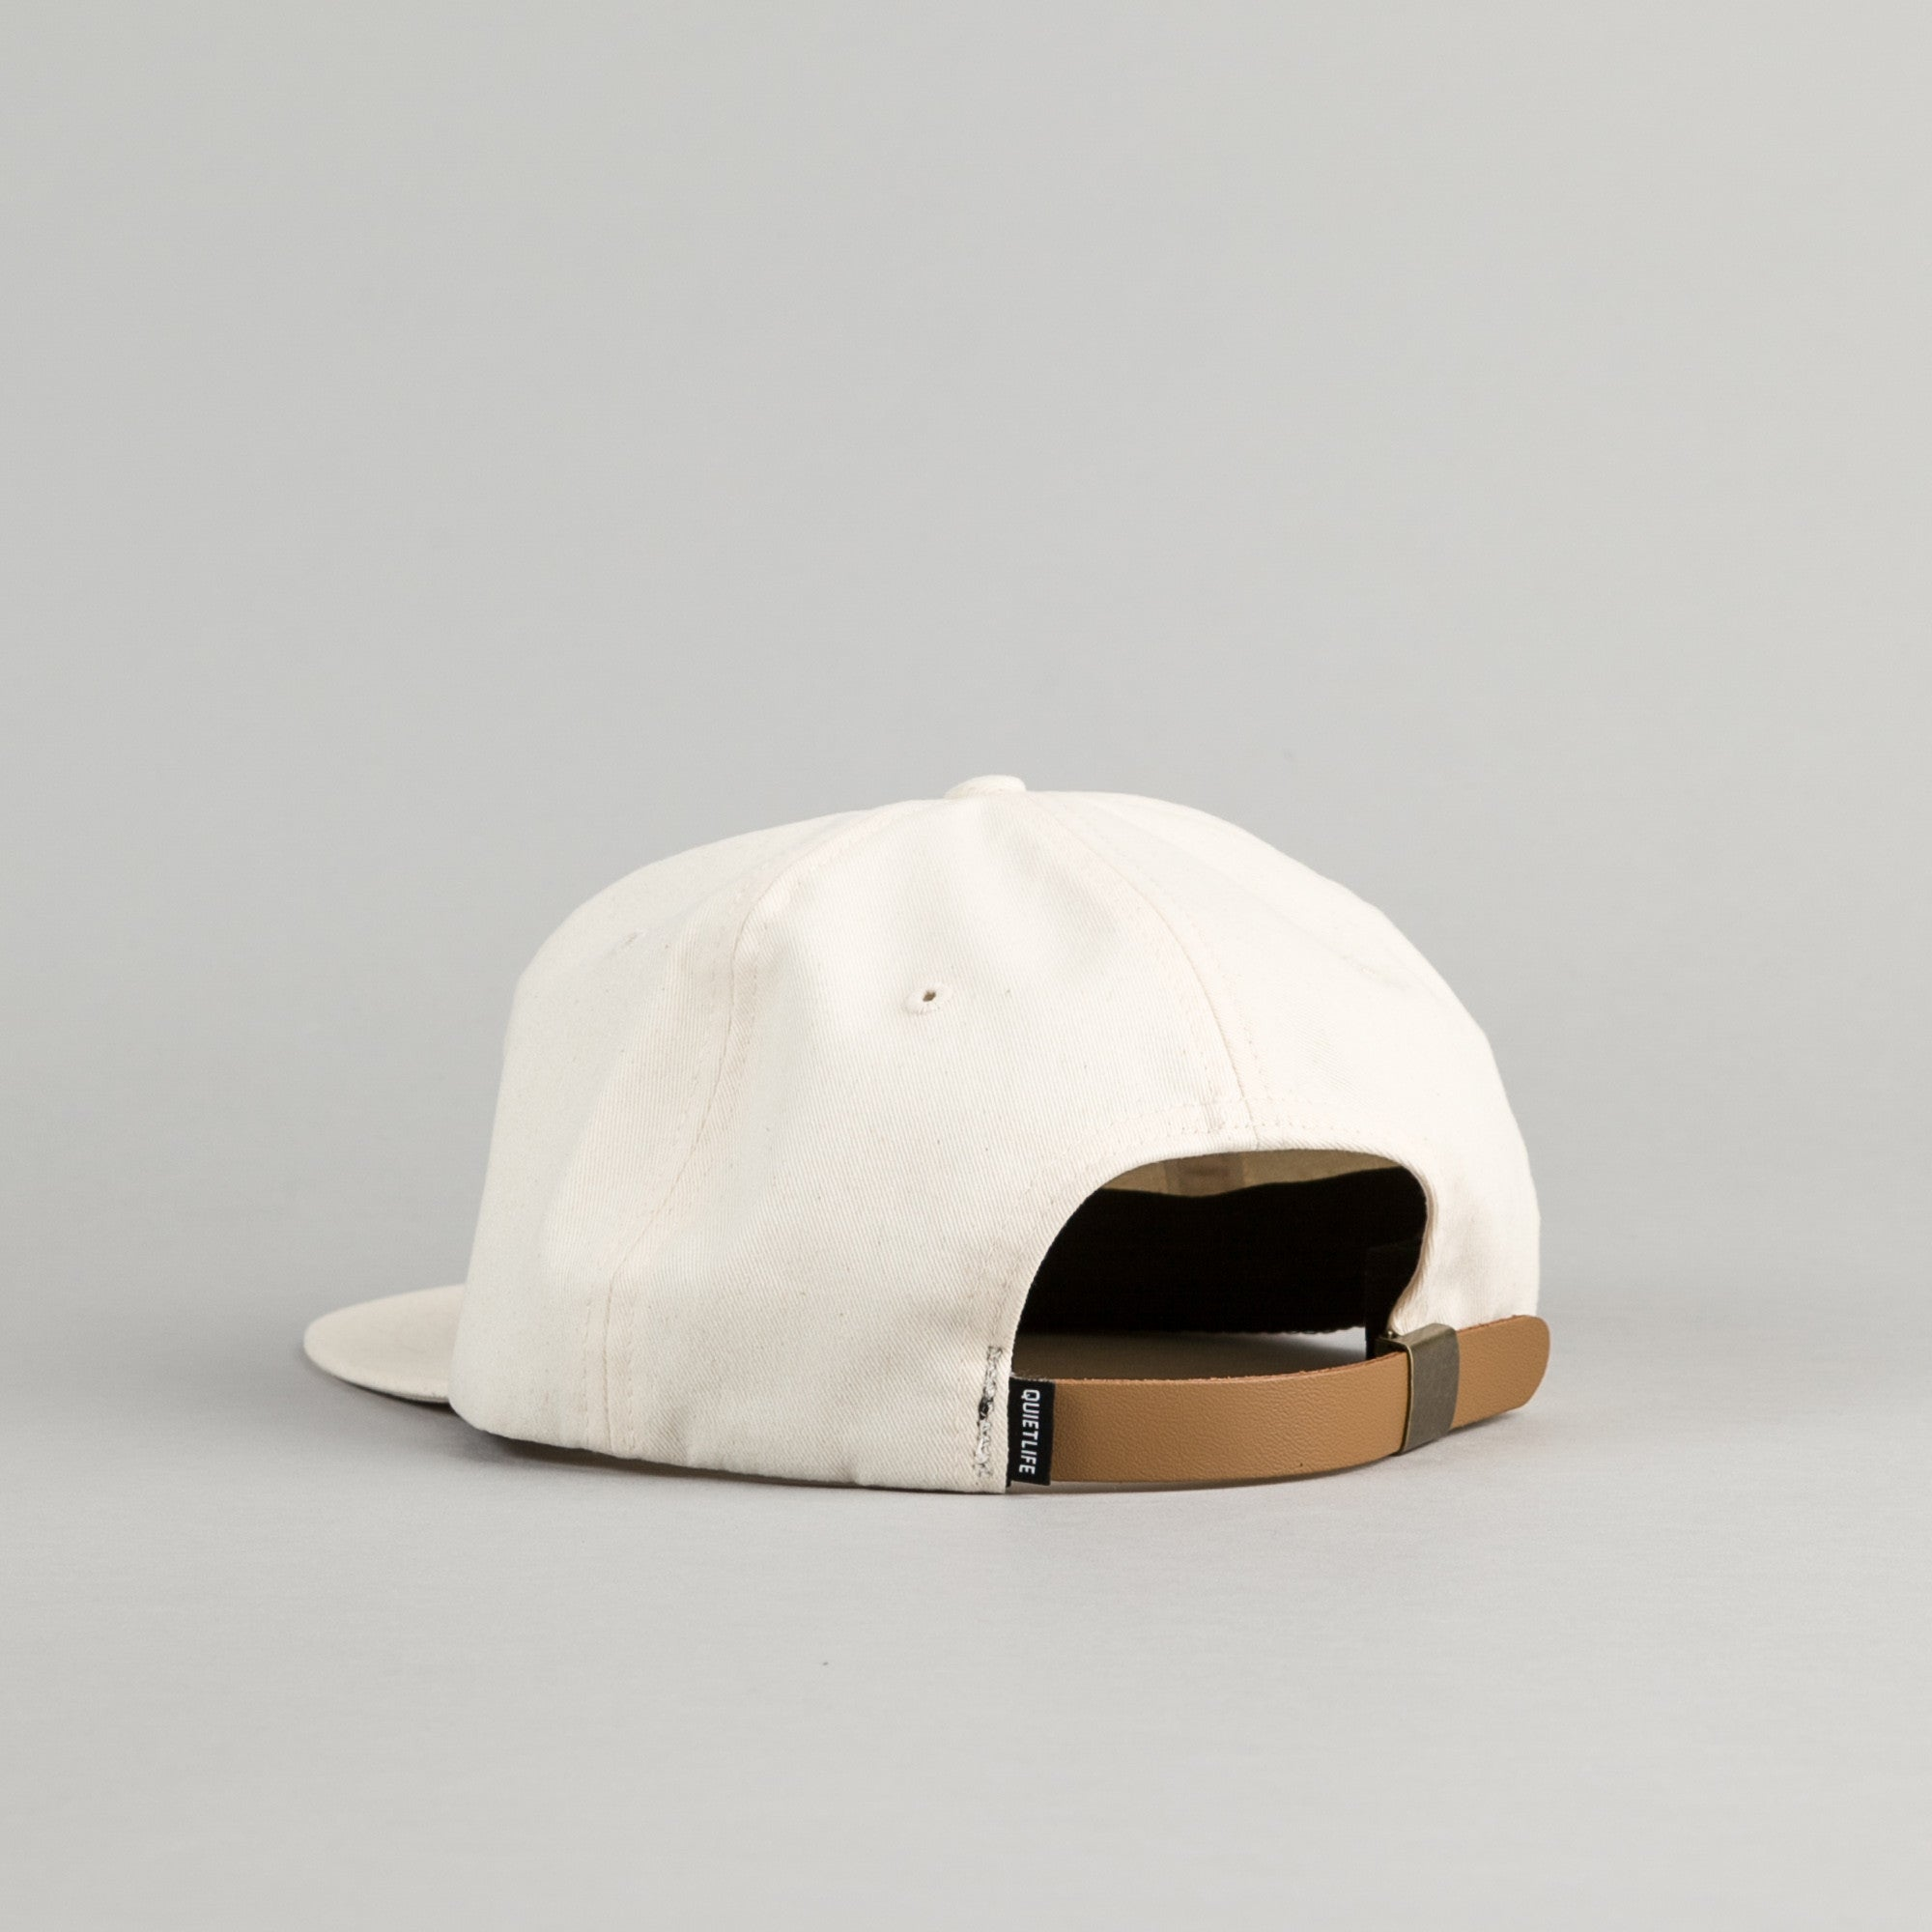 The Quiet Life La Vie Tranquille Polo Cap - Natural